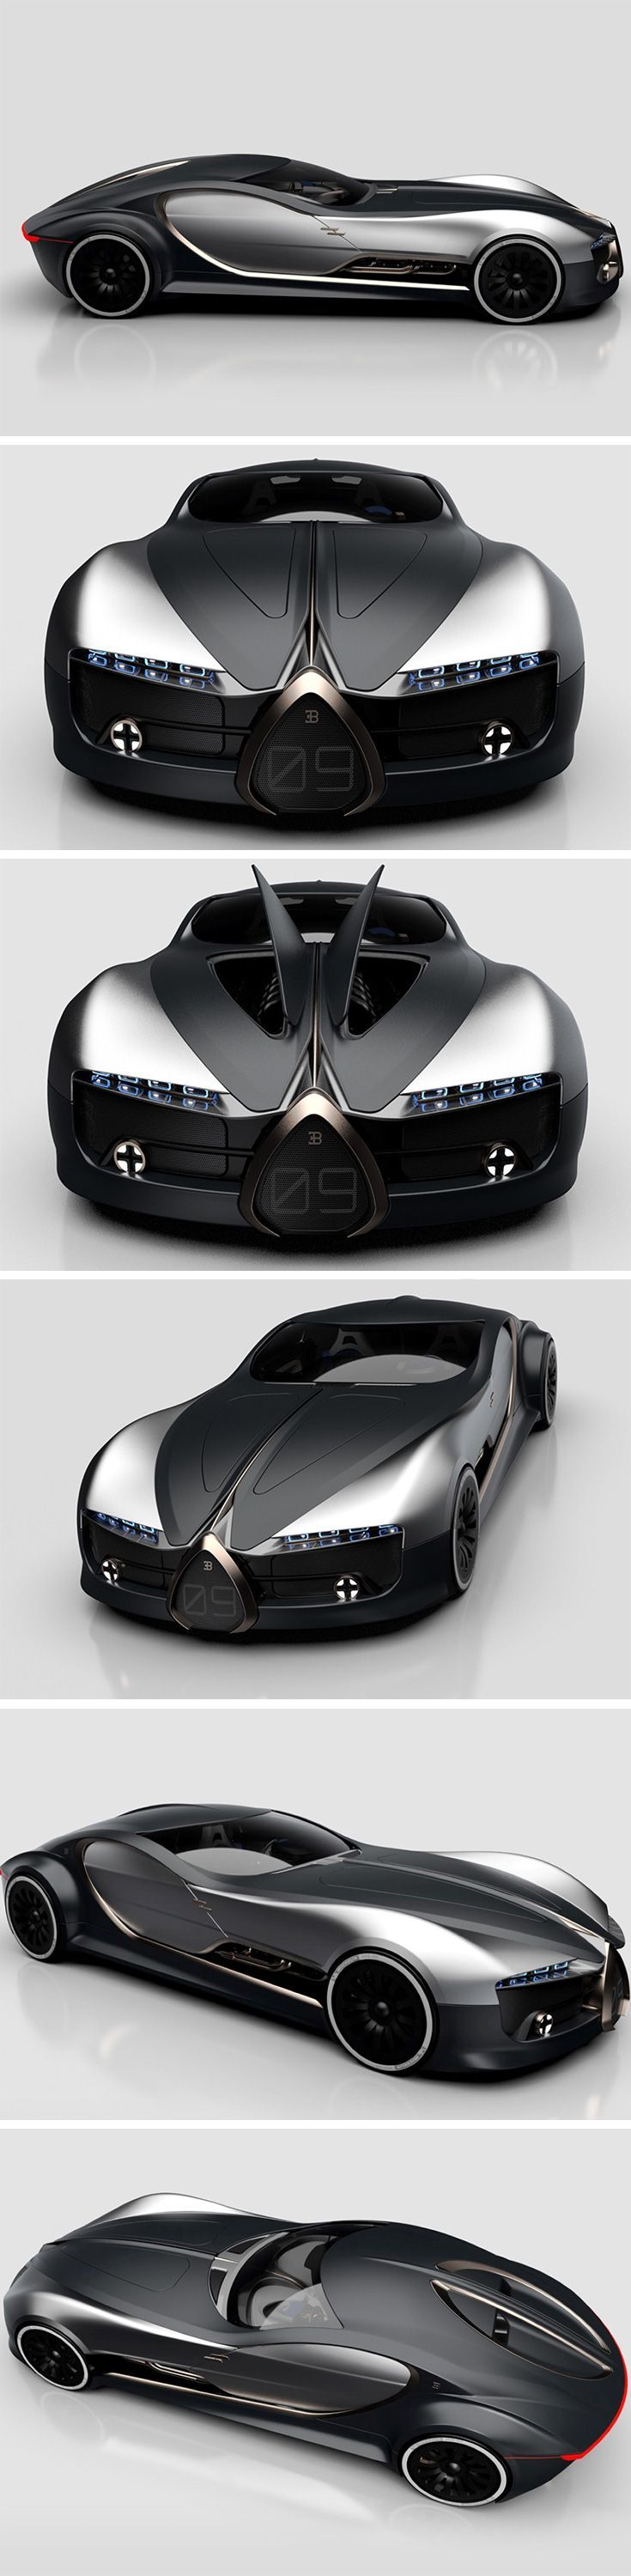 The Bugatti Type 57T has officially won our hearts! This concept car designed by Arthur B. Nustas revives the classic vintage Type 57T coupe by the German automotive giant, combining Jean Bugatti's or